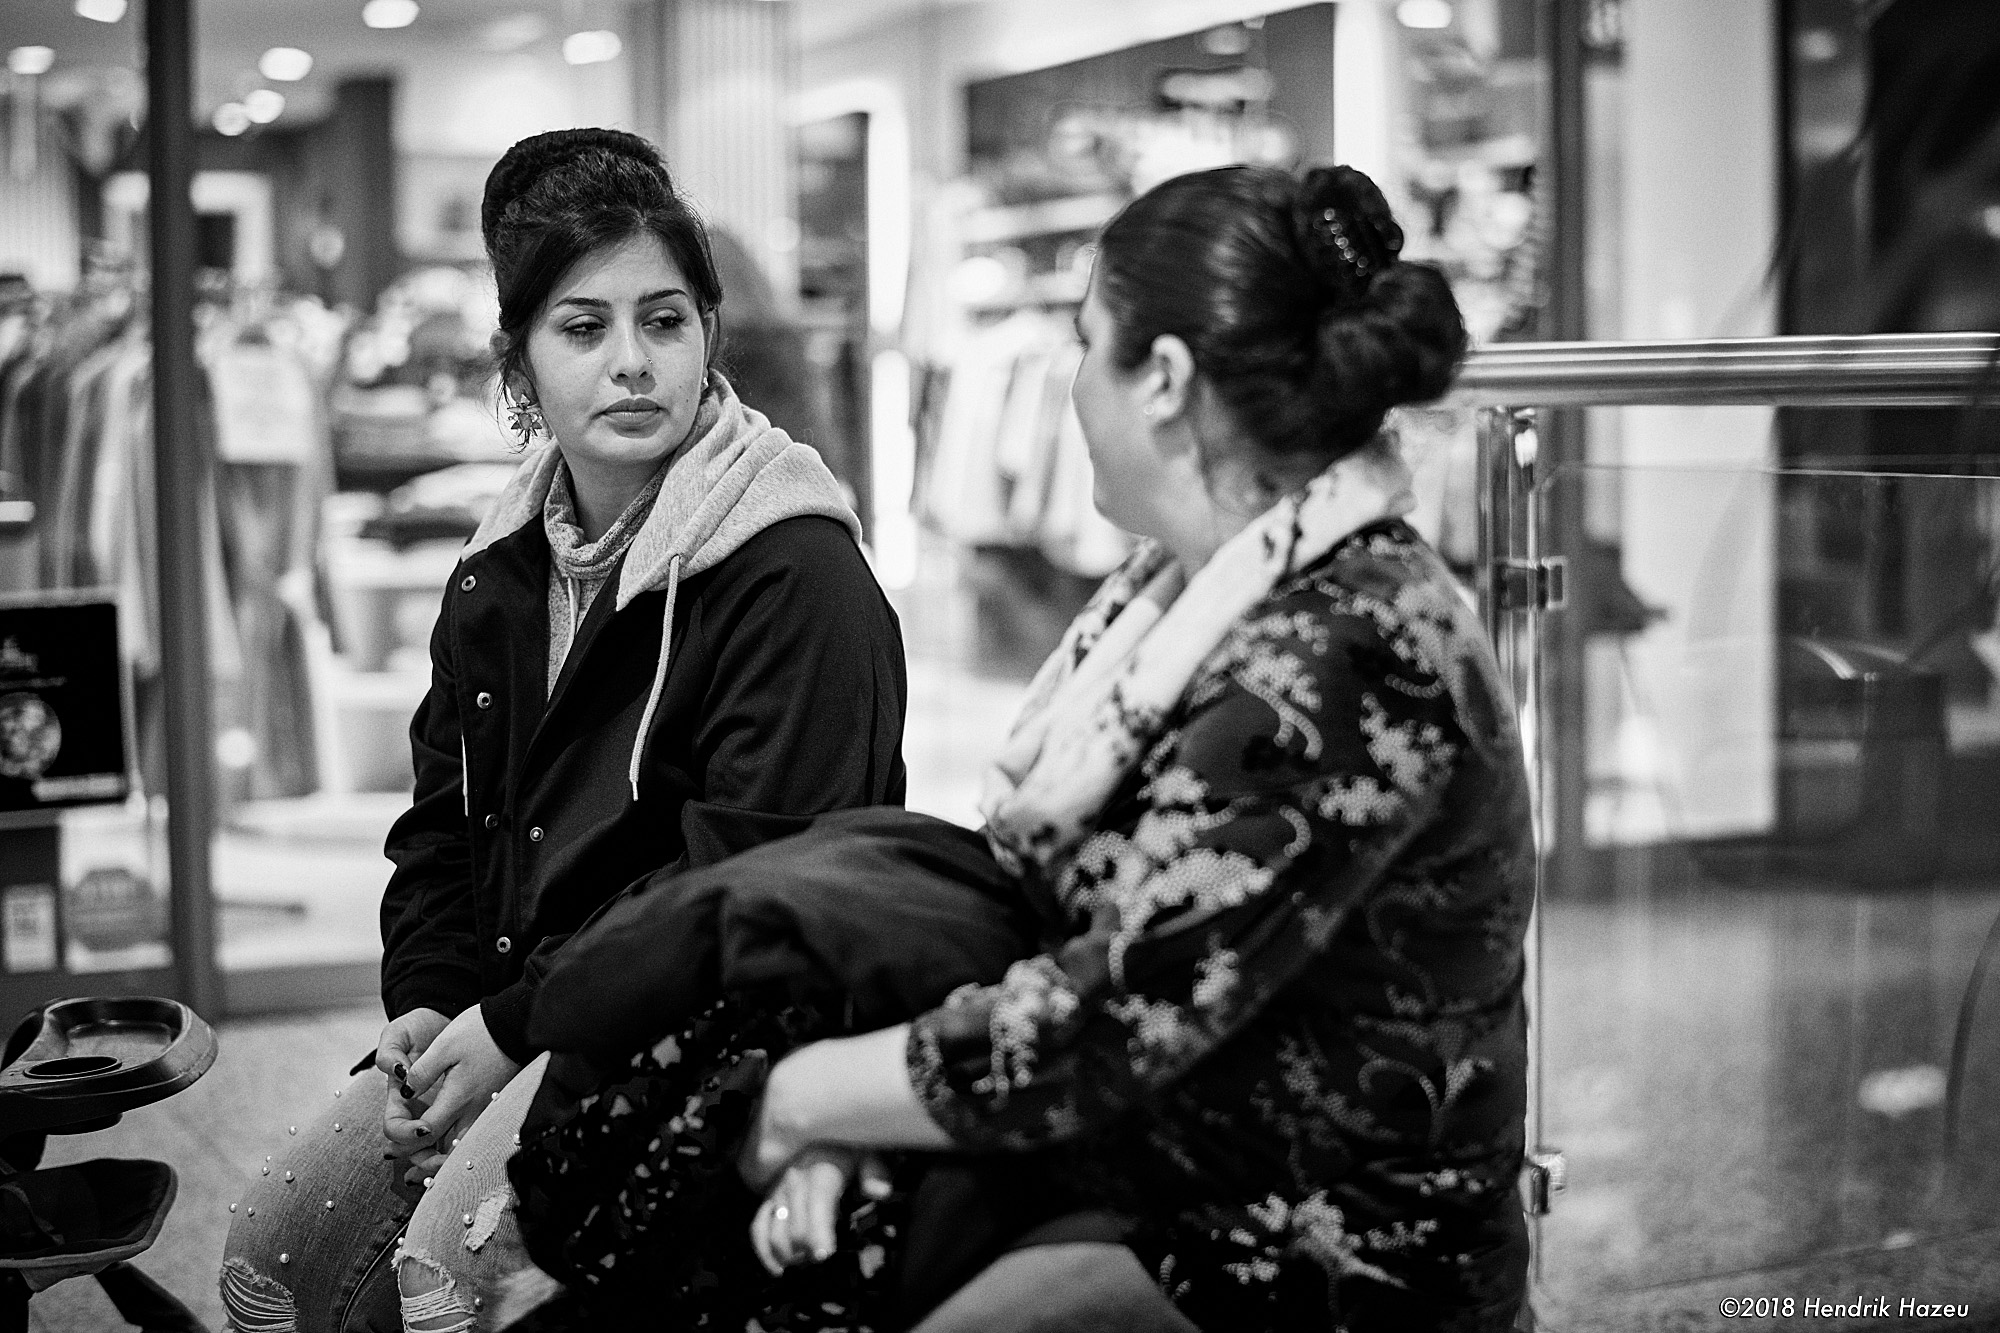 Scepticism after shopping, seen with Nikon D850 & AF-S 58mm f/1.4G @f/2, 1/125 sec, 720 ISO